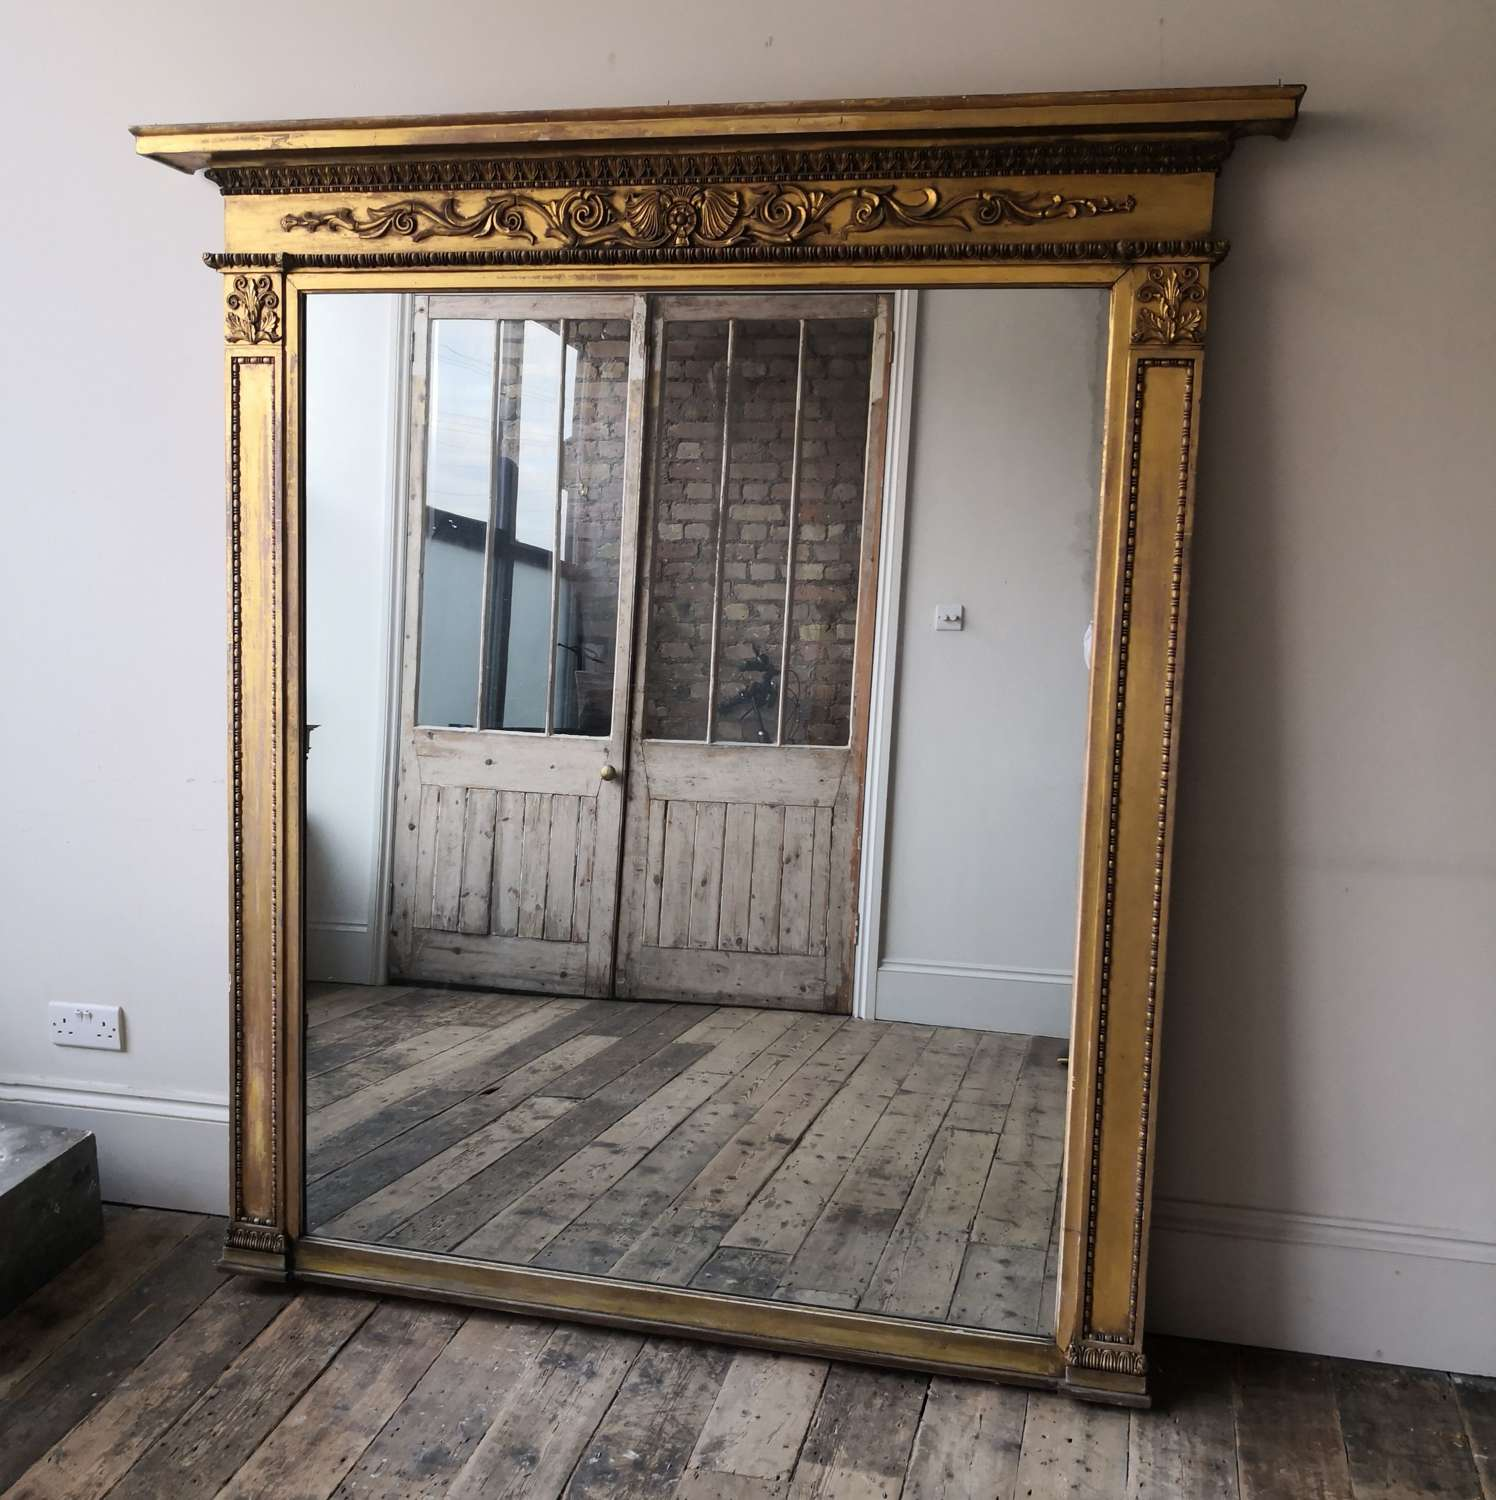 A 19th century gilt over mantle mirror